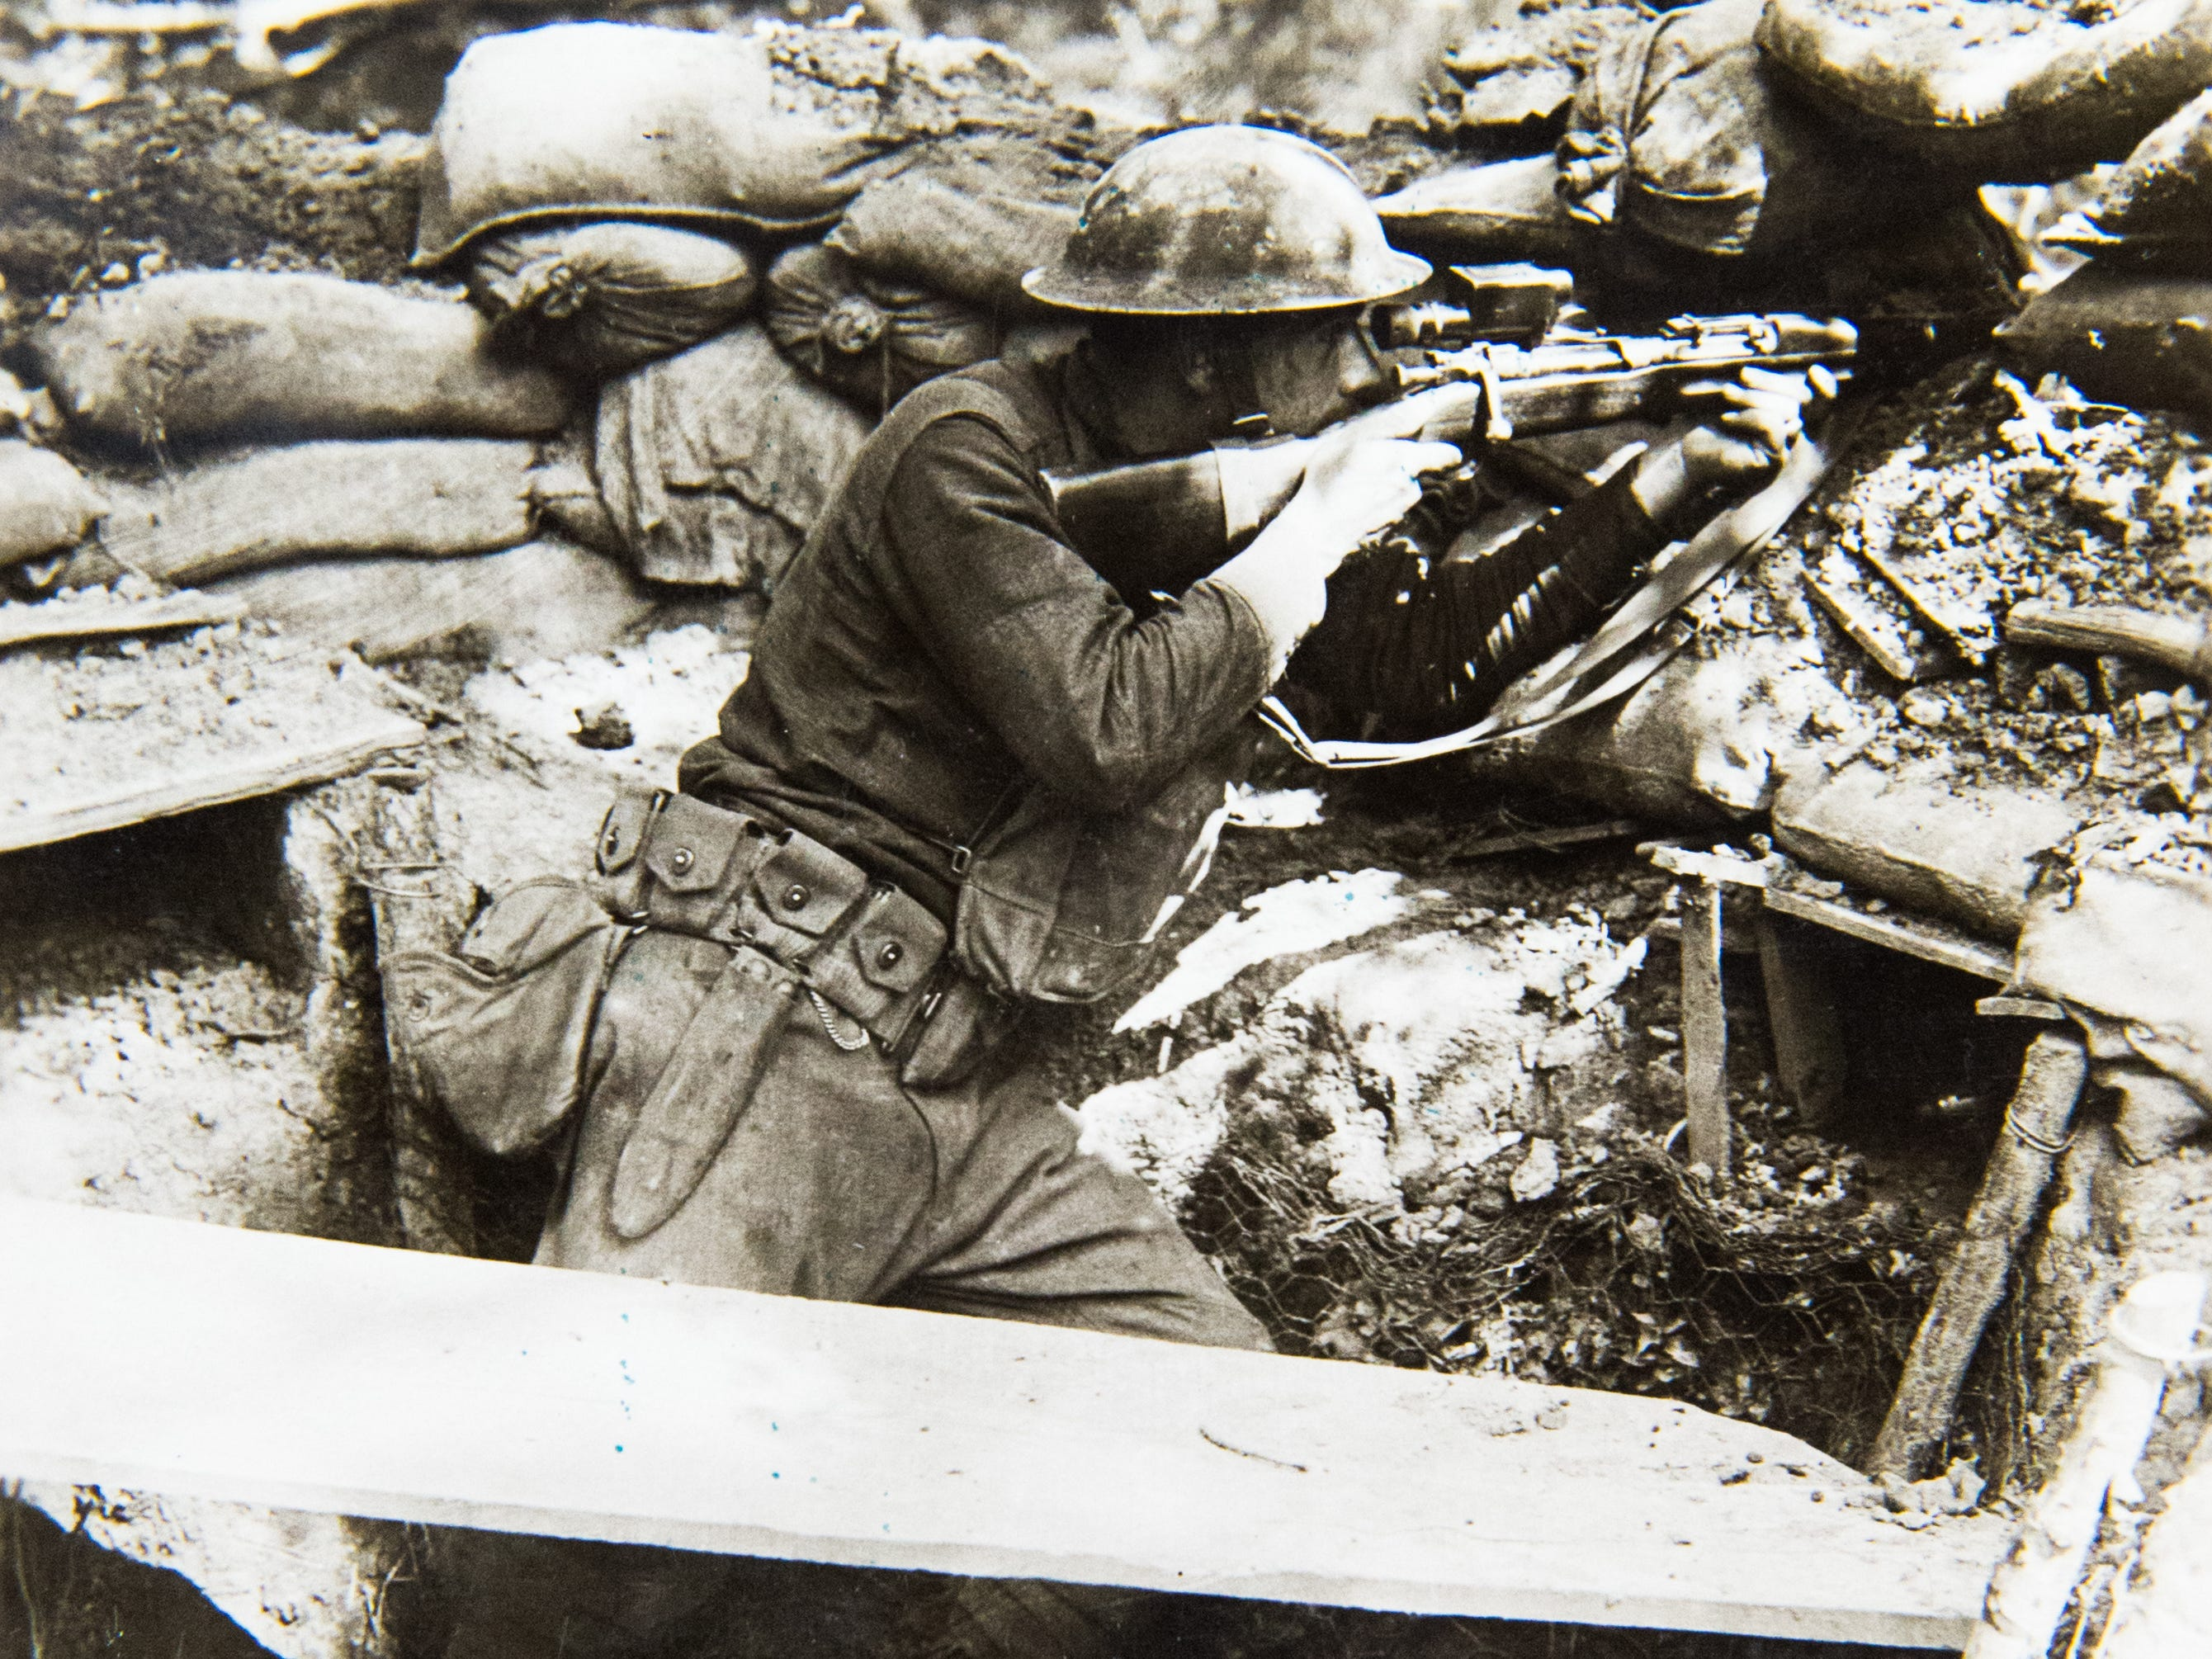 Pvt. Leo R. Hahn, Intelligence Dept. 127th Infantry sniper. In two days he has hit two German snipers. He is the champion marksman of the 127th Infantry, Co. L, 127th Infantry. Photo taken June 27, 1918, Benhols, Alsace, Germany.